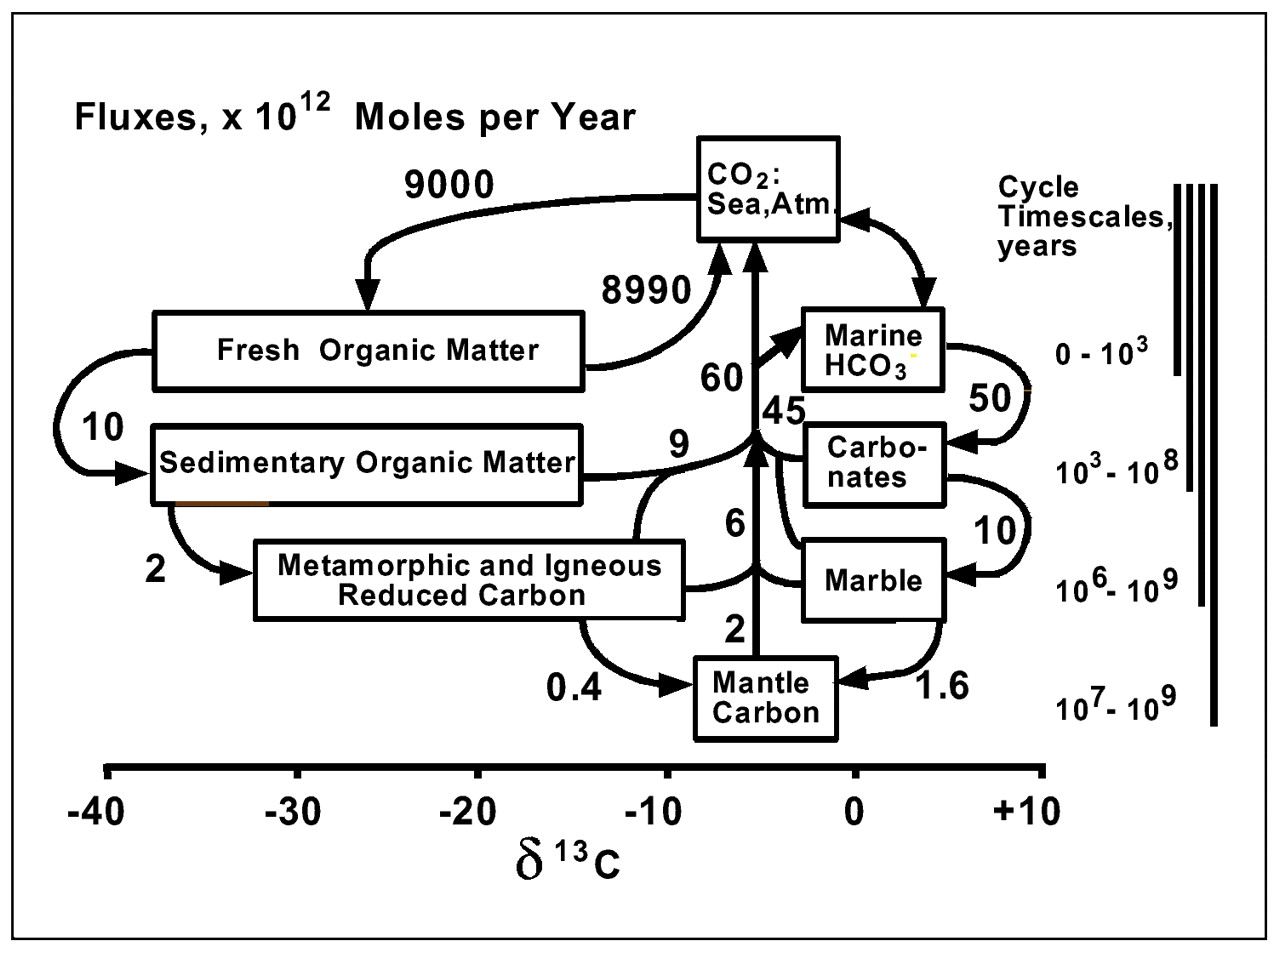 Isotopic Evolution Of The Biogeochemical Carbon Cycle During Animal Cells Moreover On Plant And Cell Diagram View Largedownload Slide